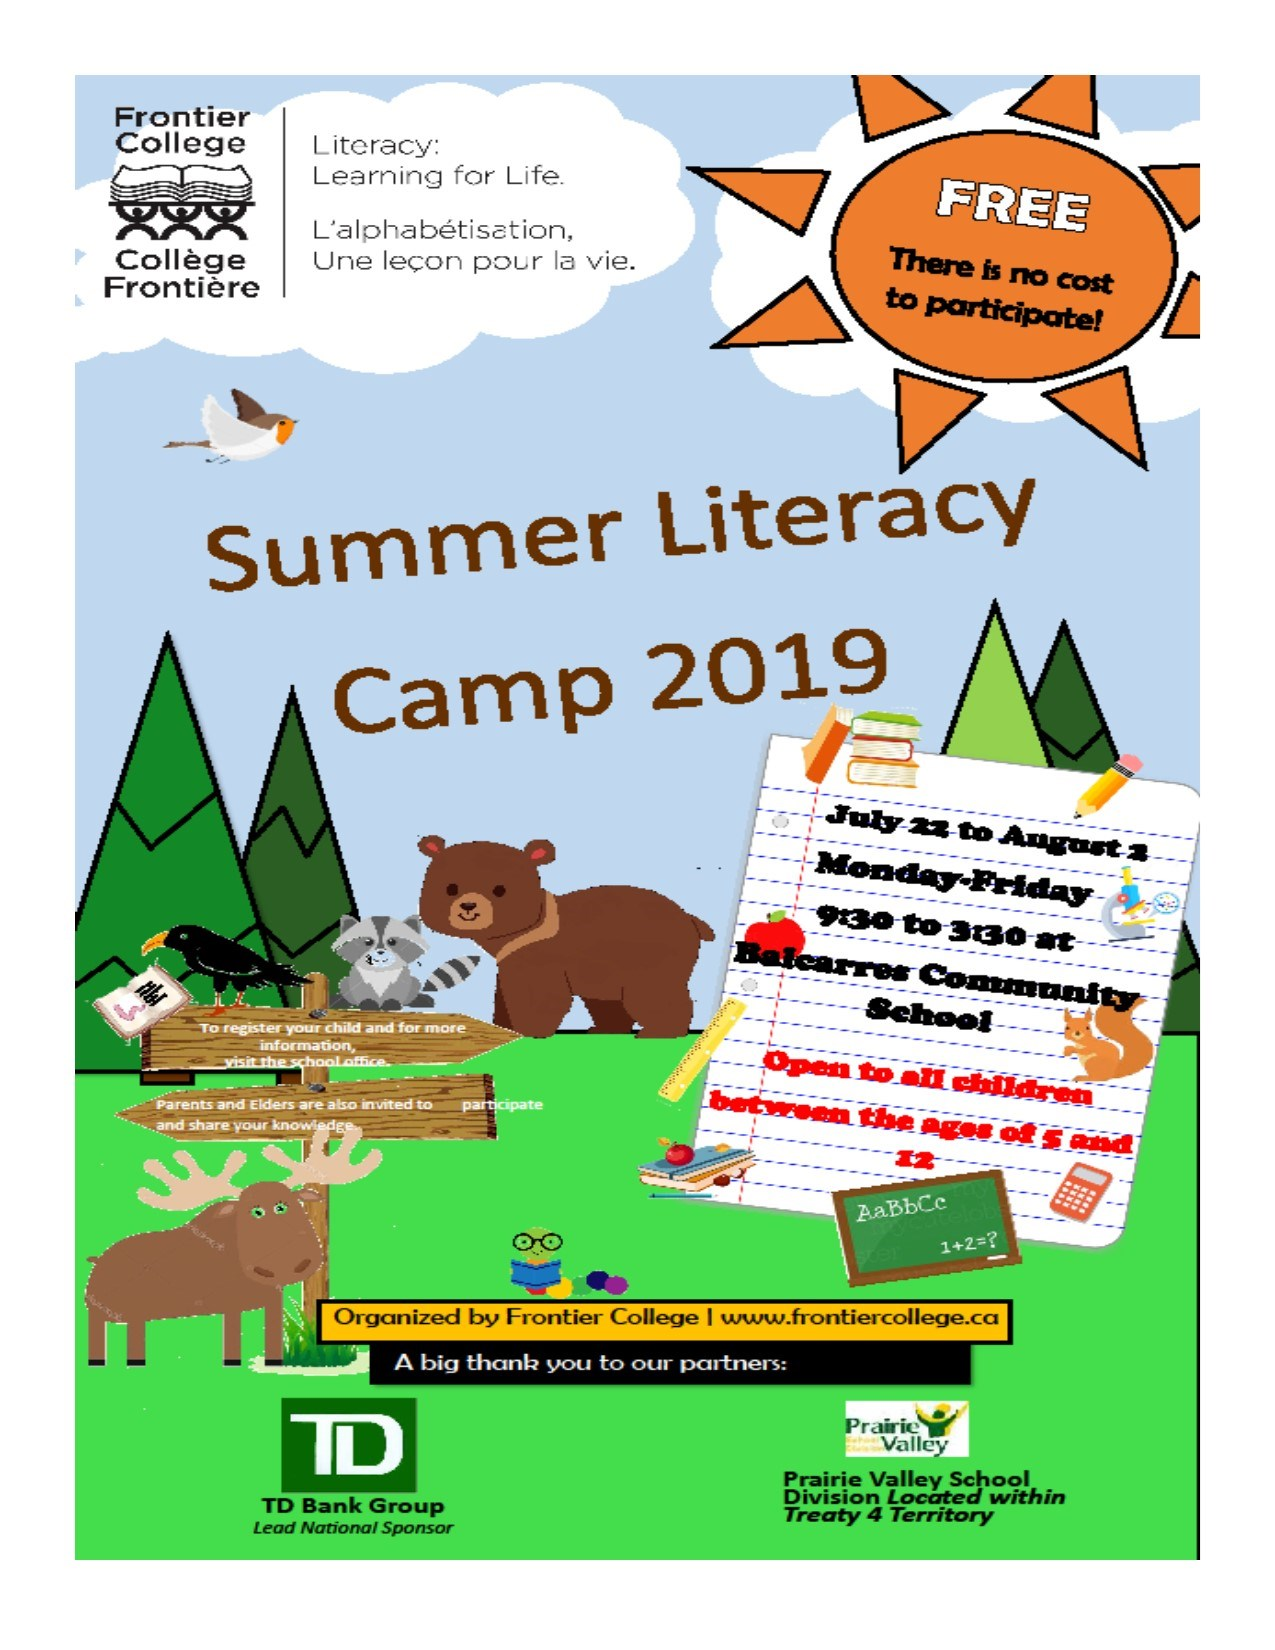 Summer Literacy Camp 2019